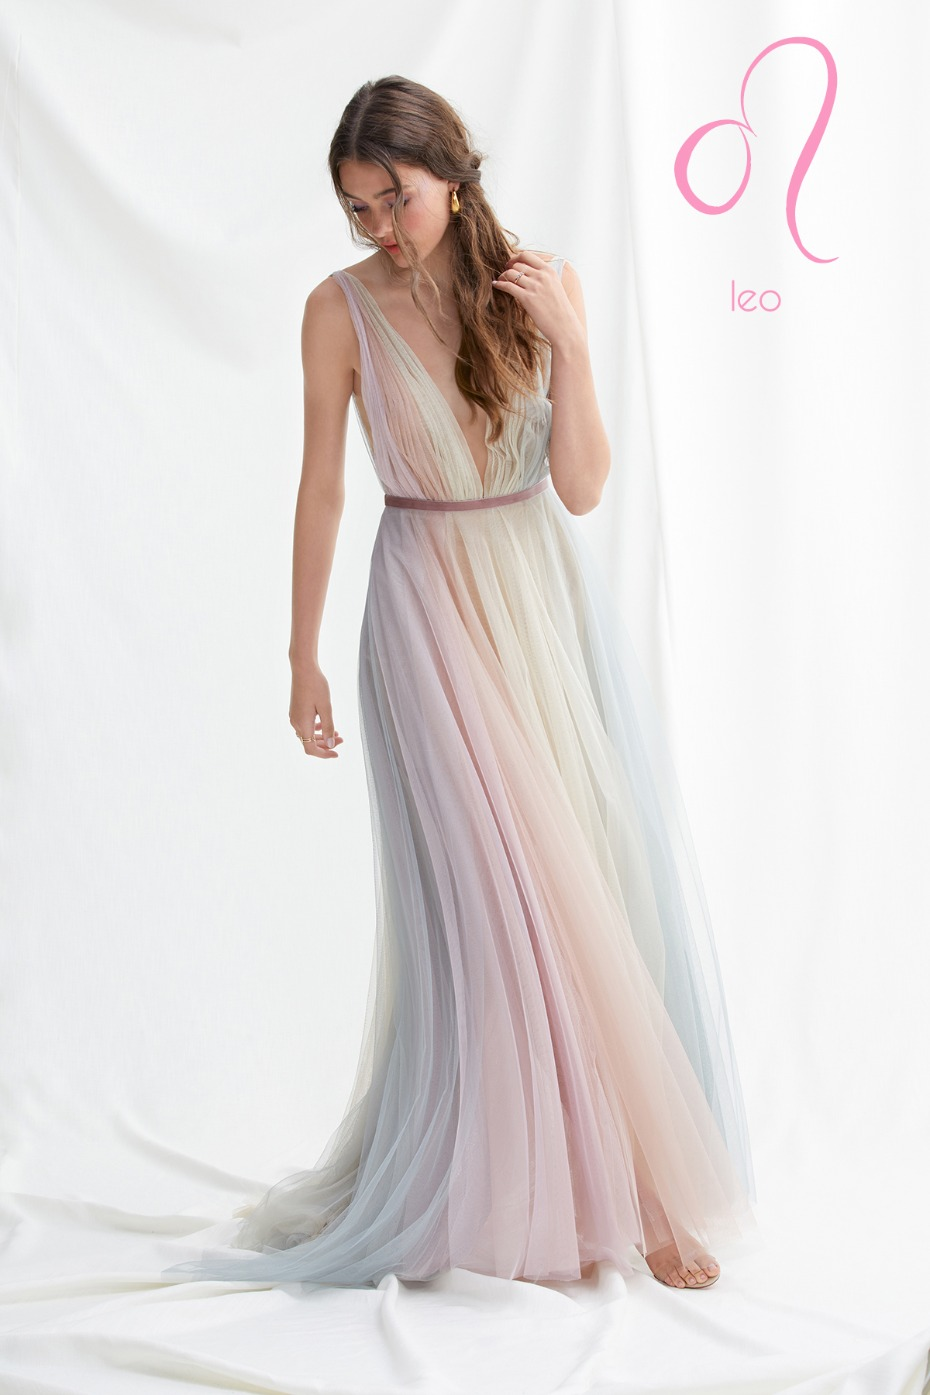 pastel rainbow tulle dress for the Leo Zodiac